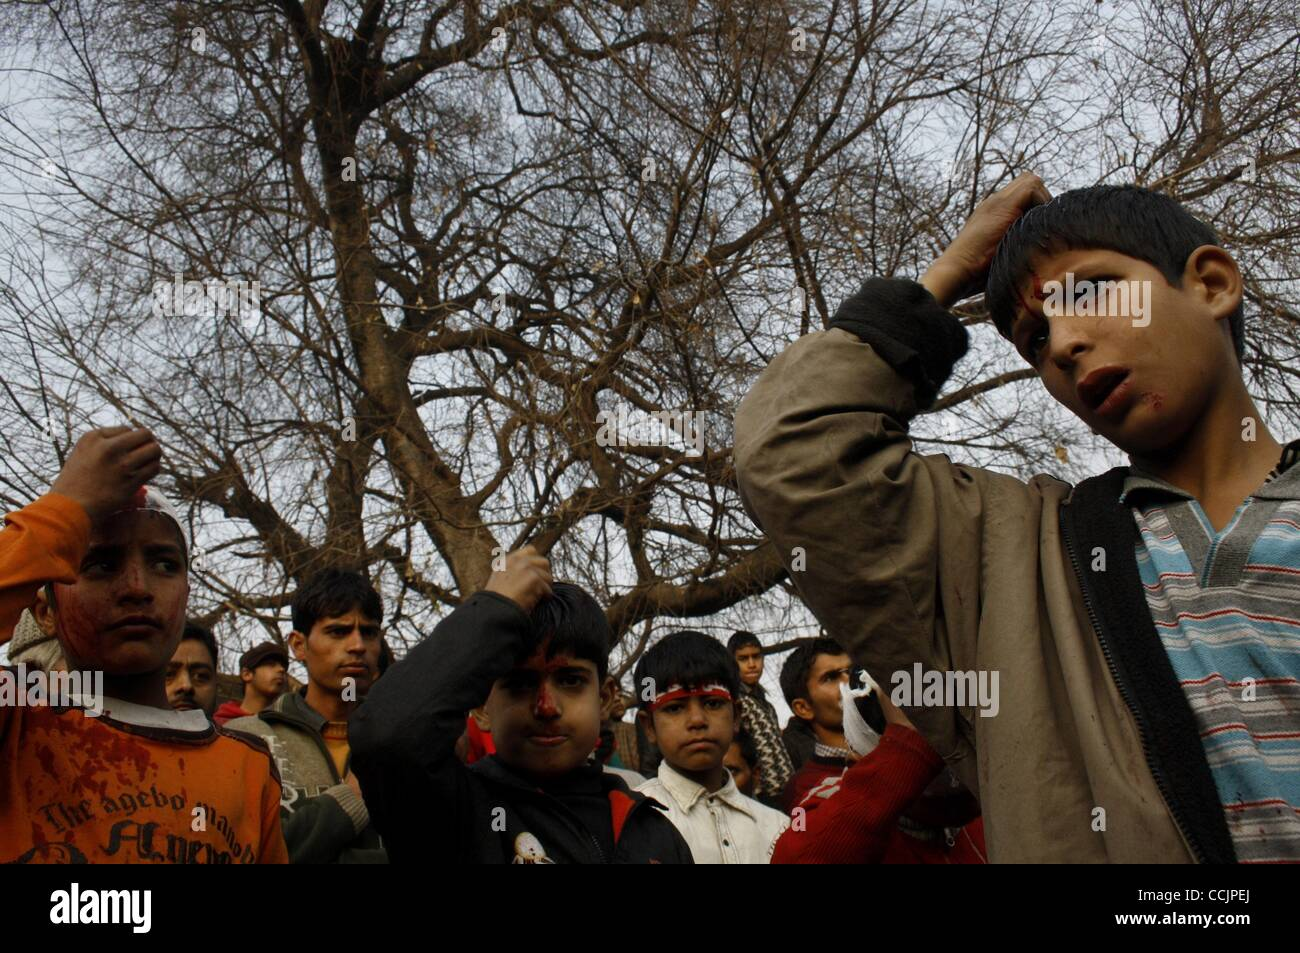 Non Muslim Perspective On The Revolution Of Imam Hussain: Muharram Procession Stock Photos & Muharram Procession